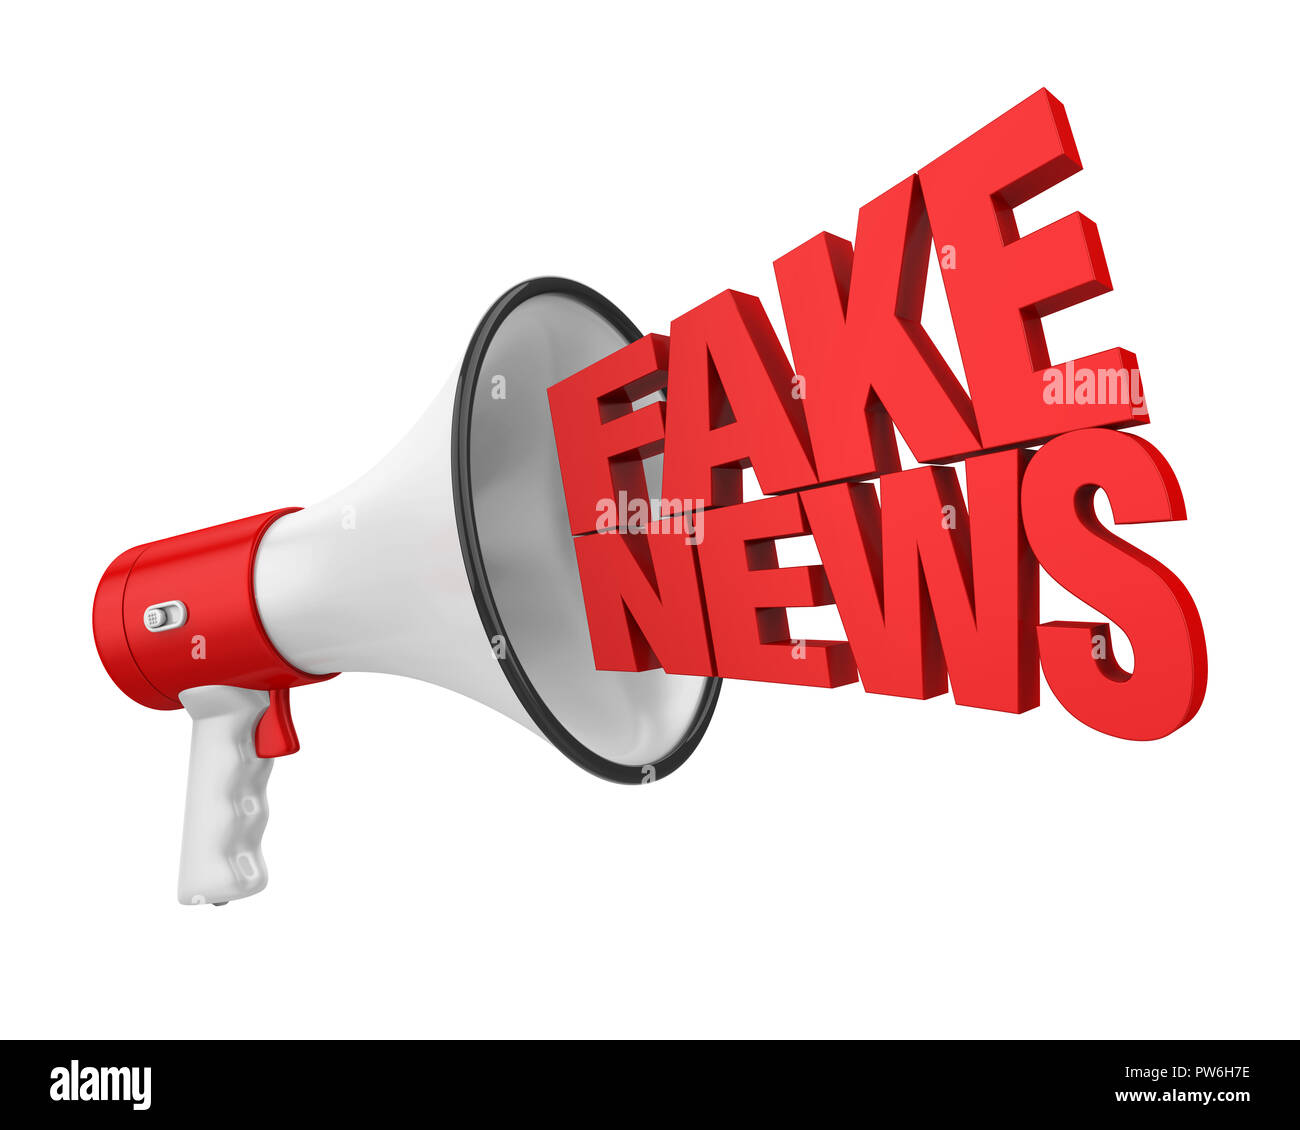 Hoax / Fake News Concept Isolated - Stock Image